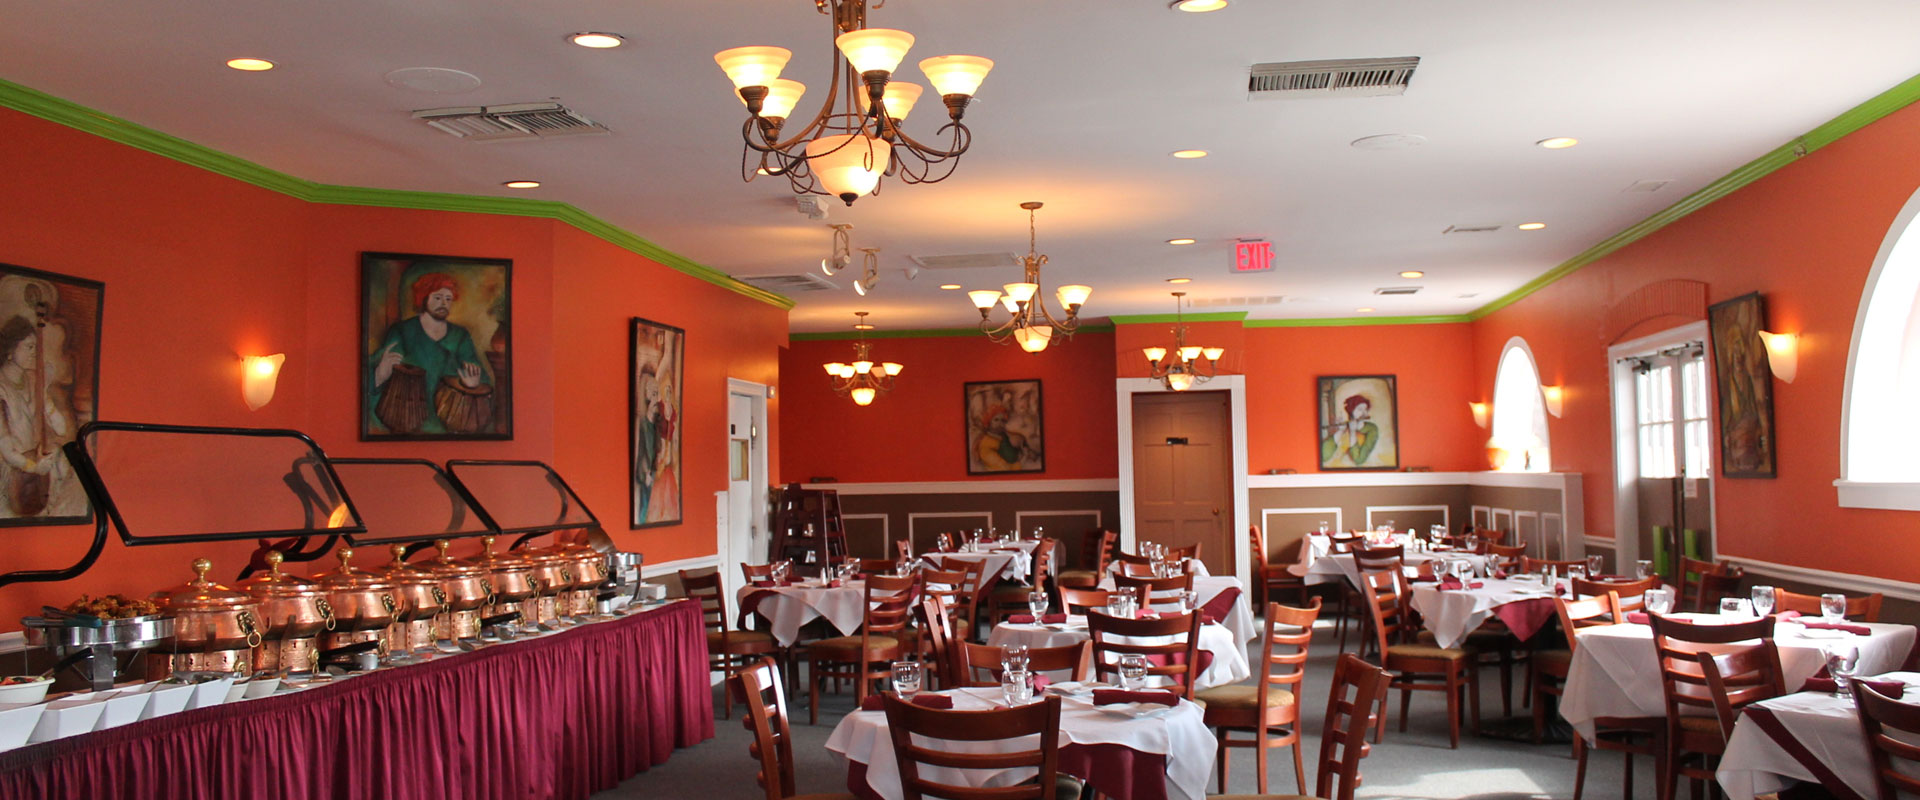 Raaga Restaurant Authentic Indian Restaurant In Falls Church